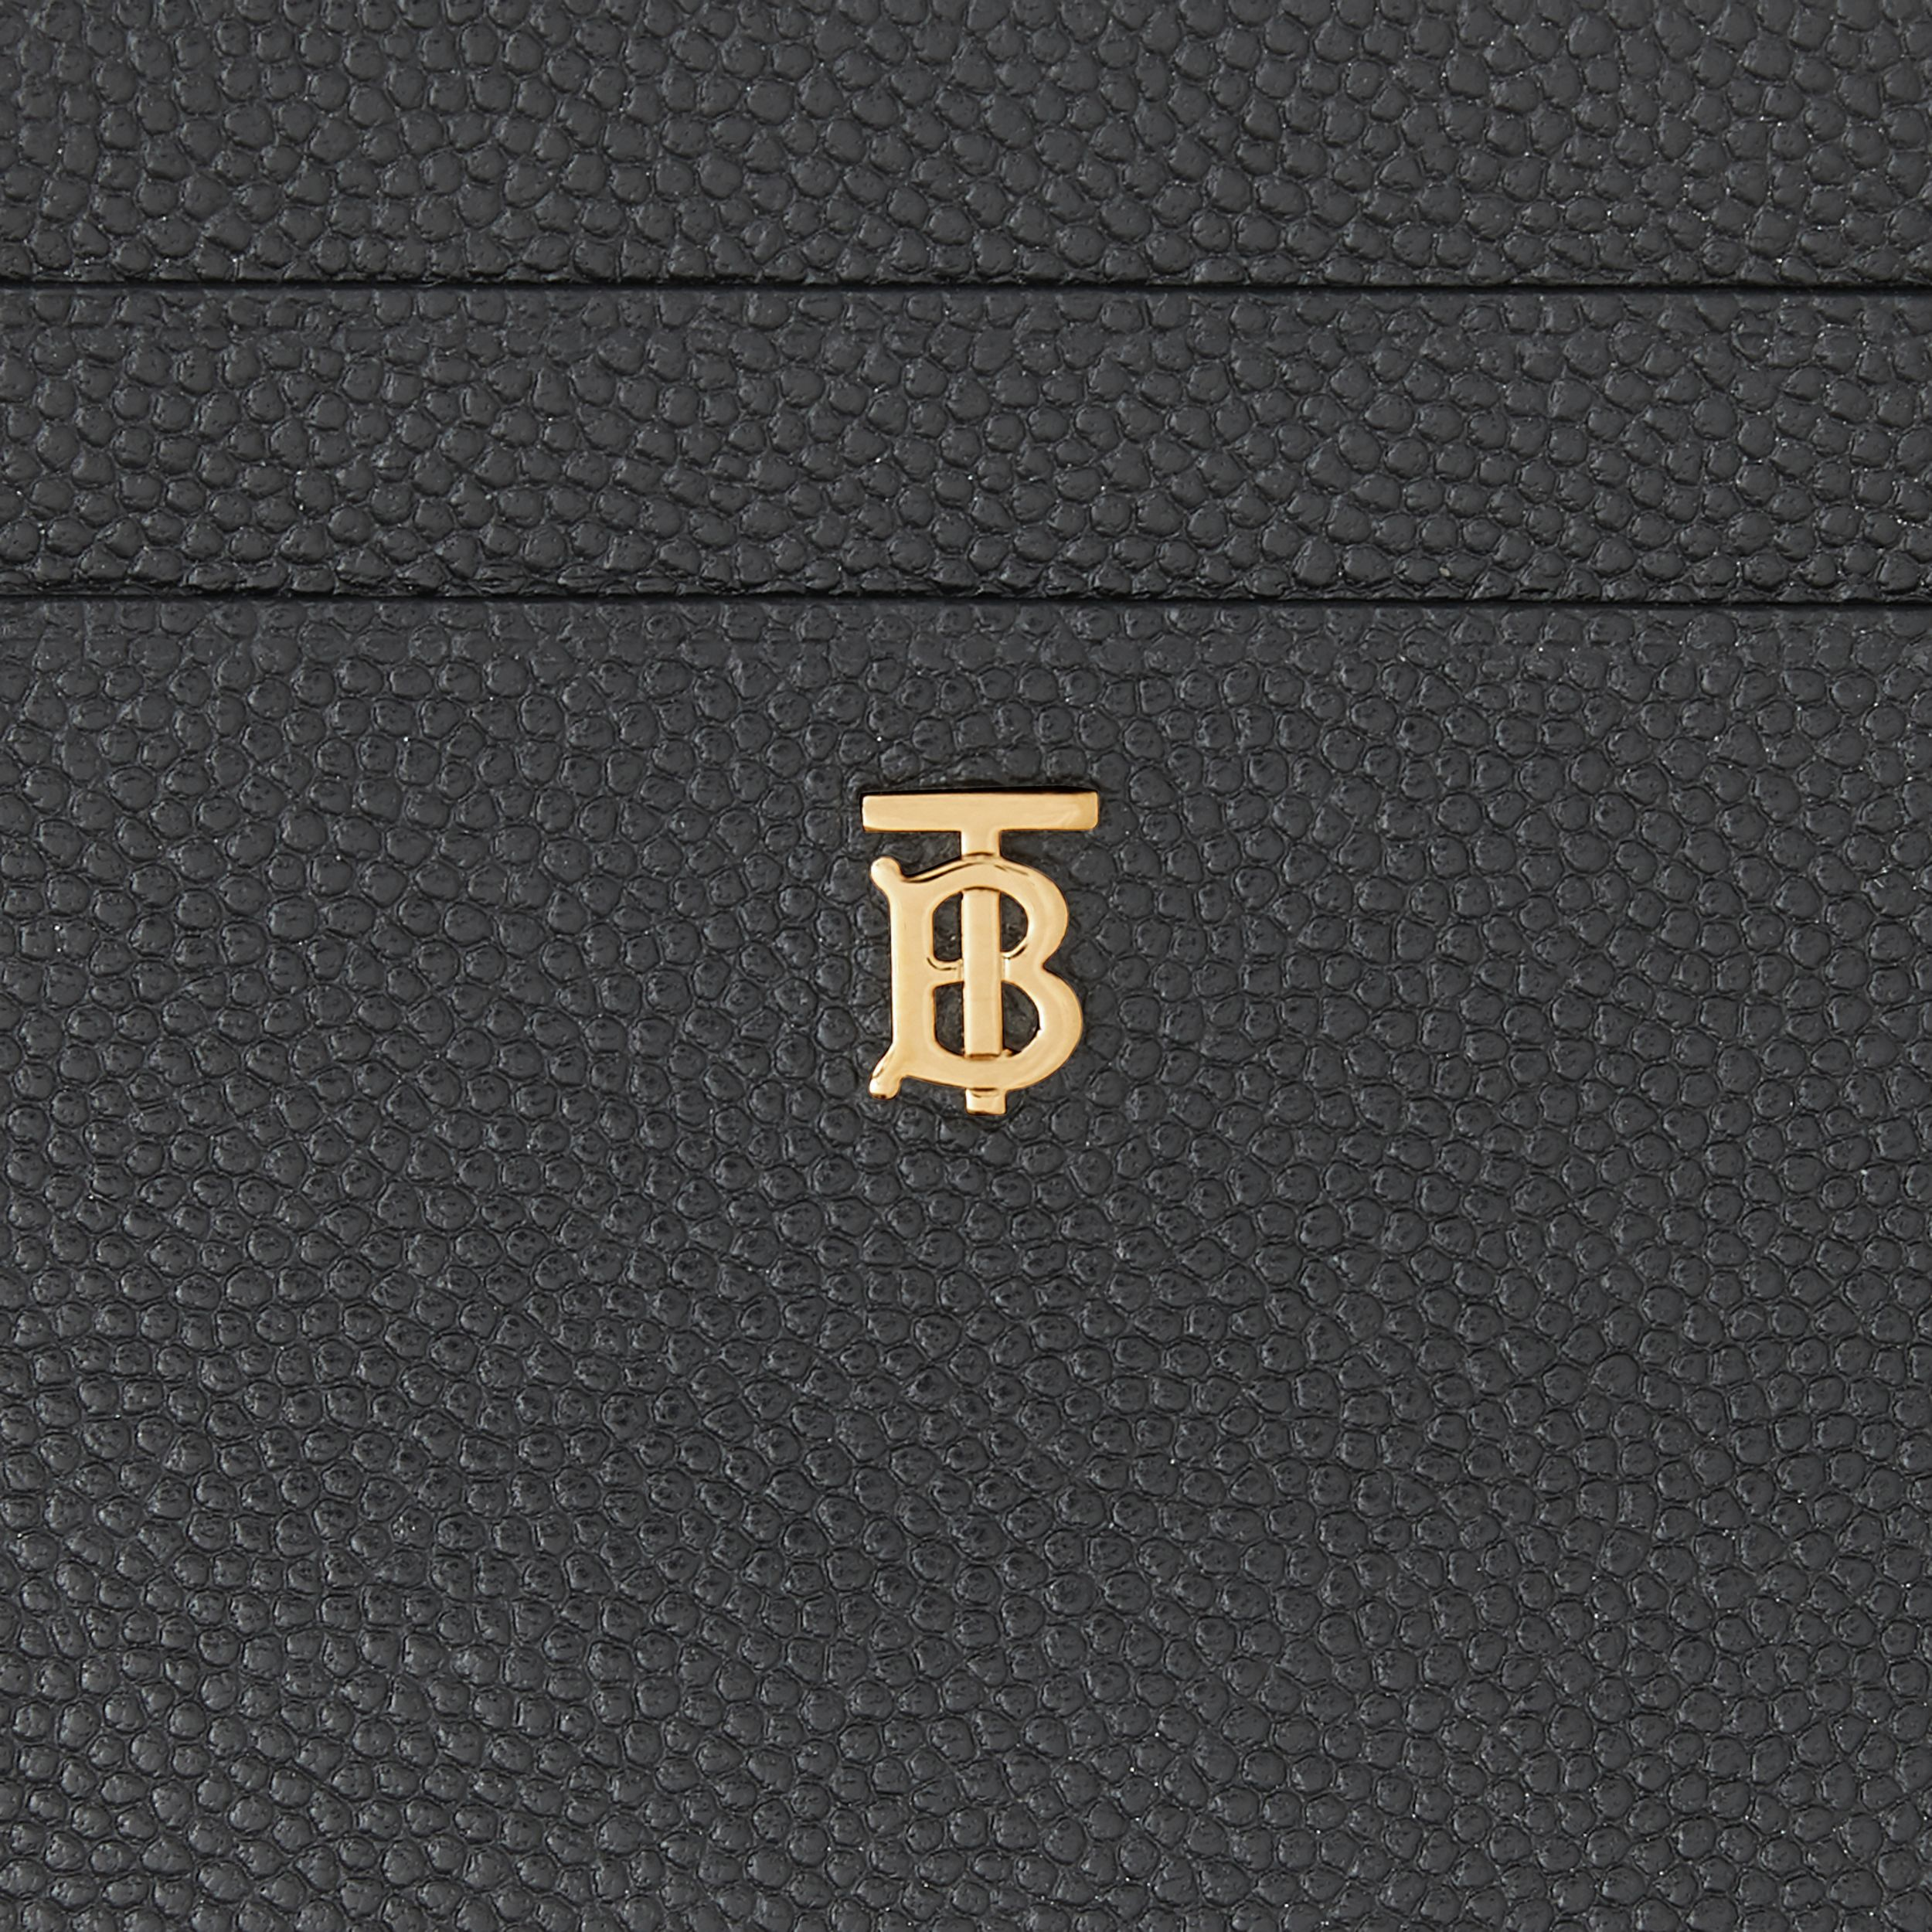 Monogram Motif Leather Card Case in Black - Women | Burberry - 2